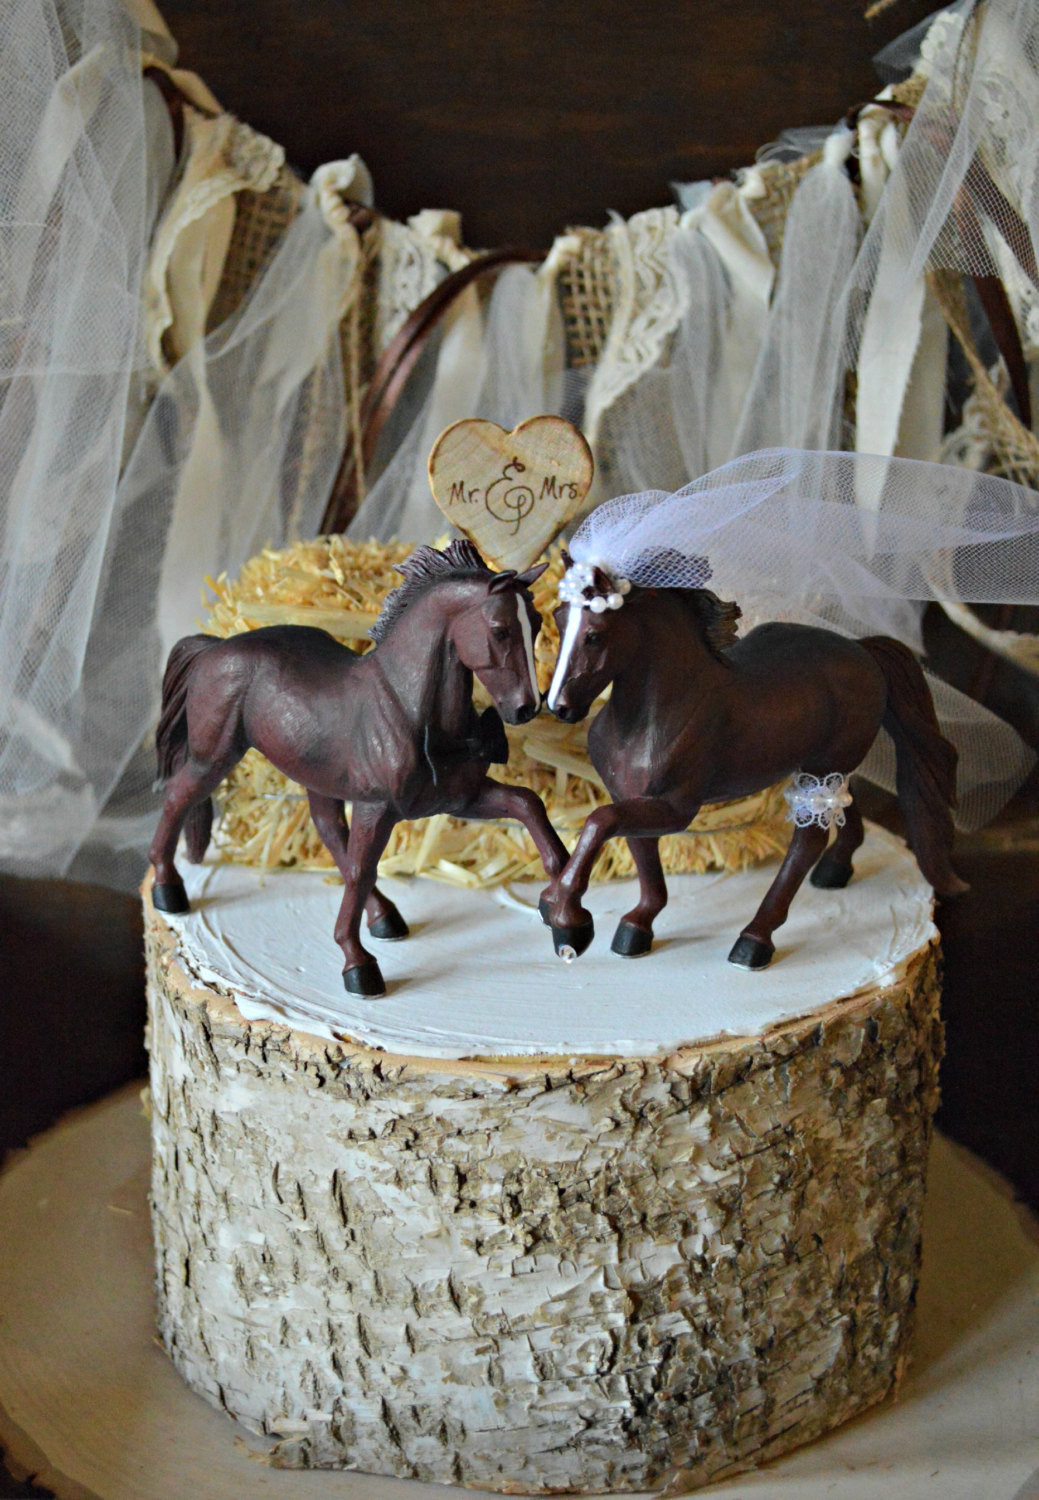 Western Cake Toppers For Wedding Cakes  Horse Wedding Cake Topper Western Cake Topper Country Western